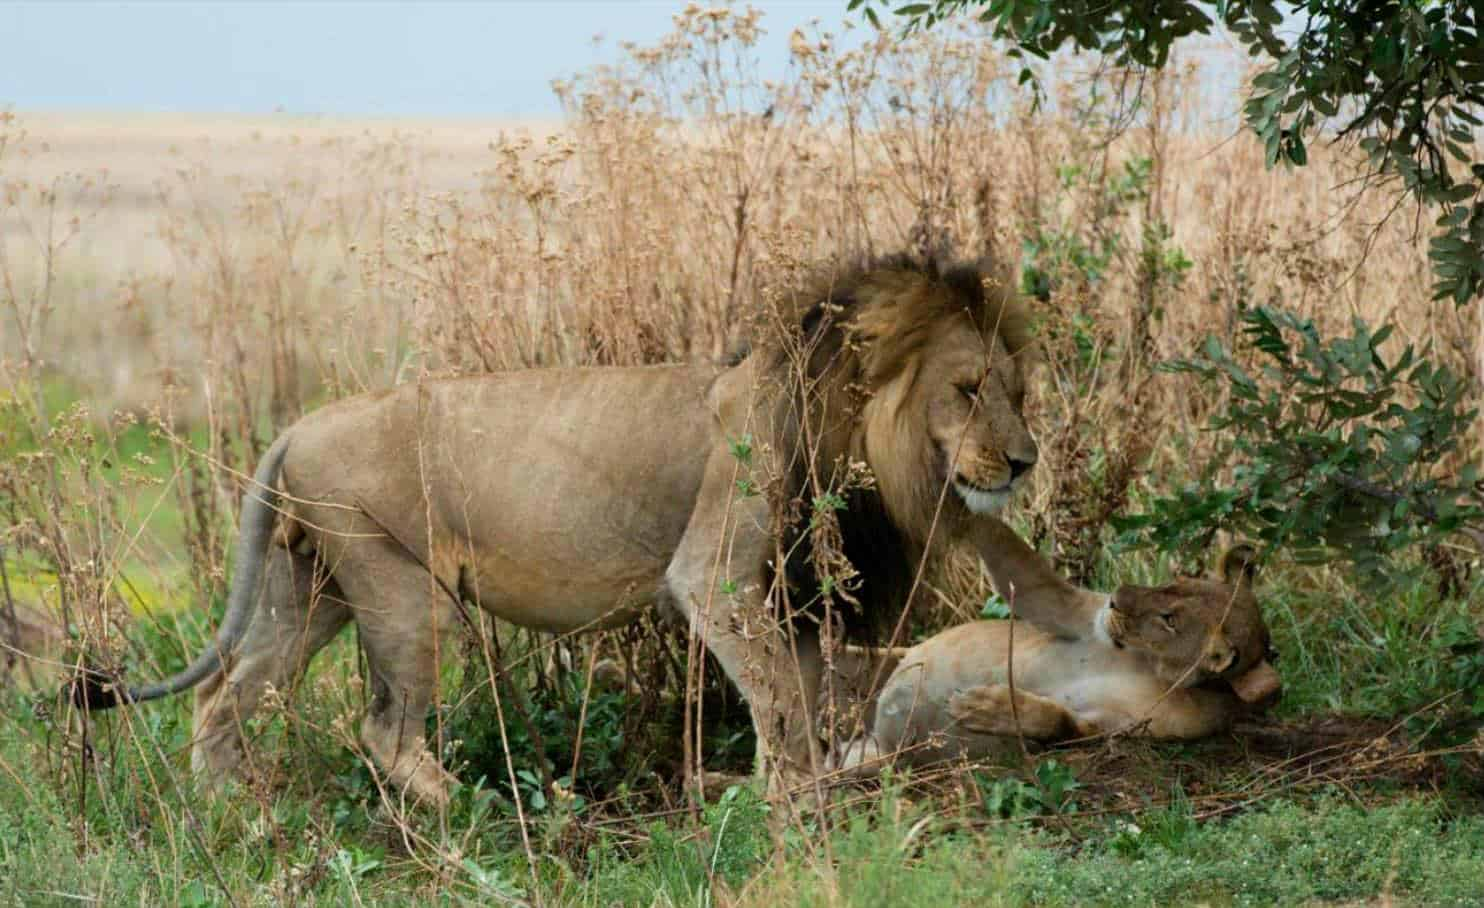 Lion Cubs Born in Liuwa Plain National Park in Zambia – A Major Milestone in Lion Restoration Programme